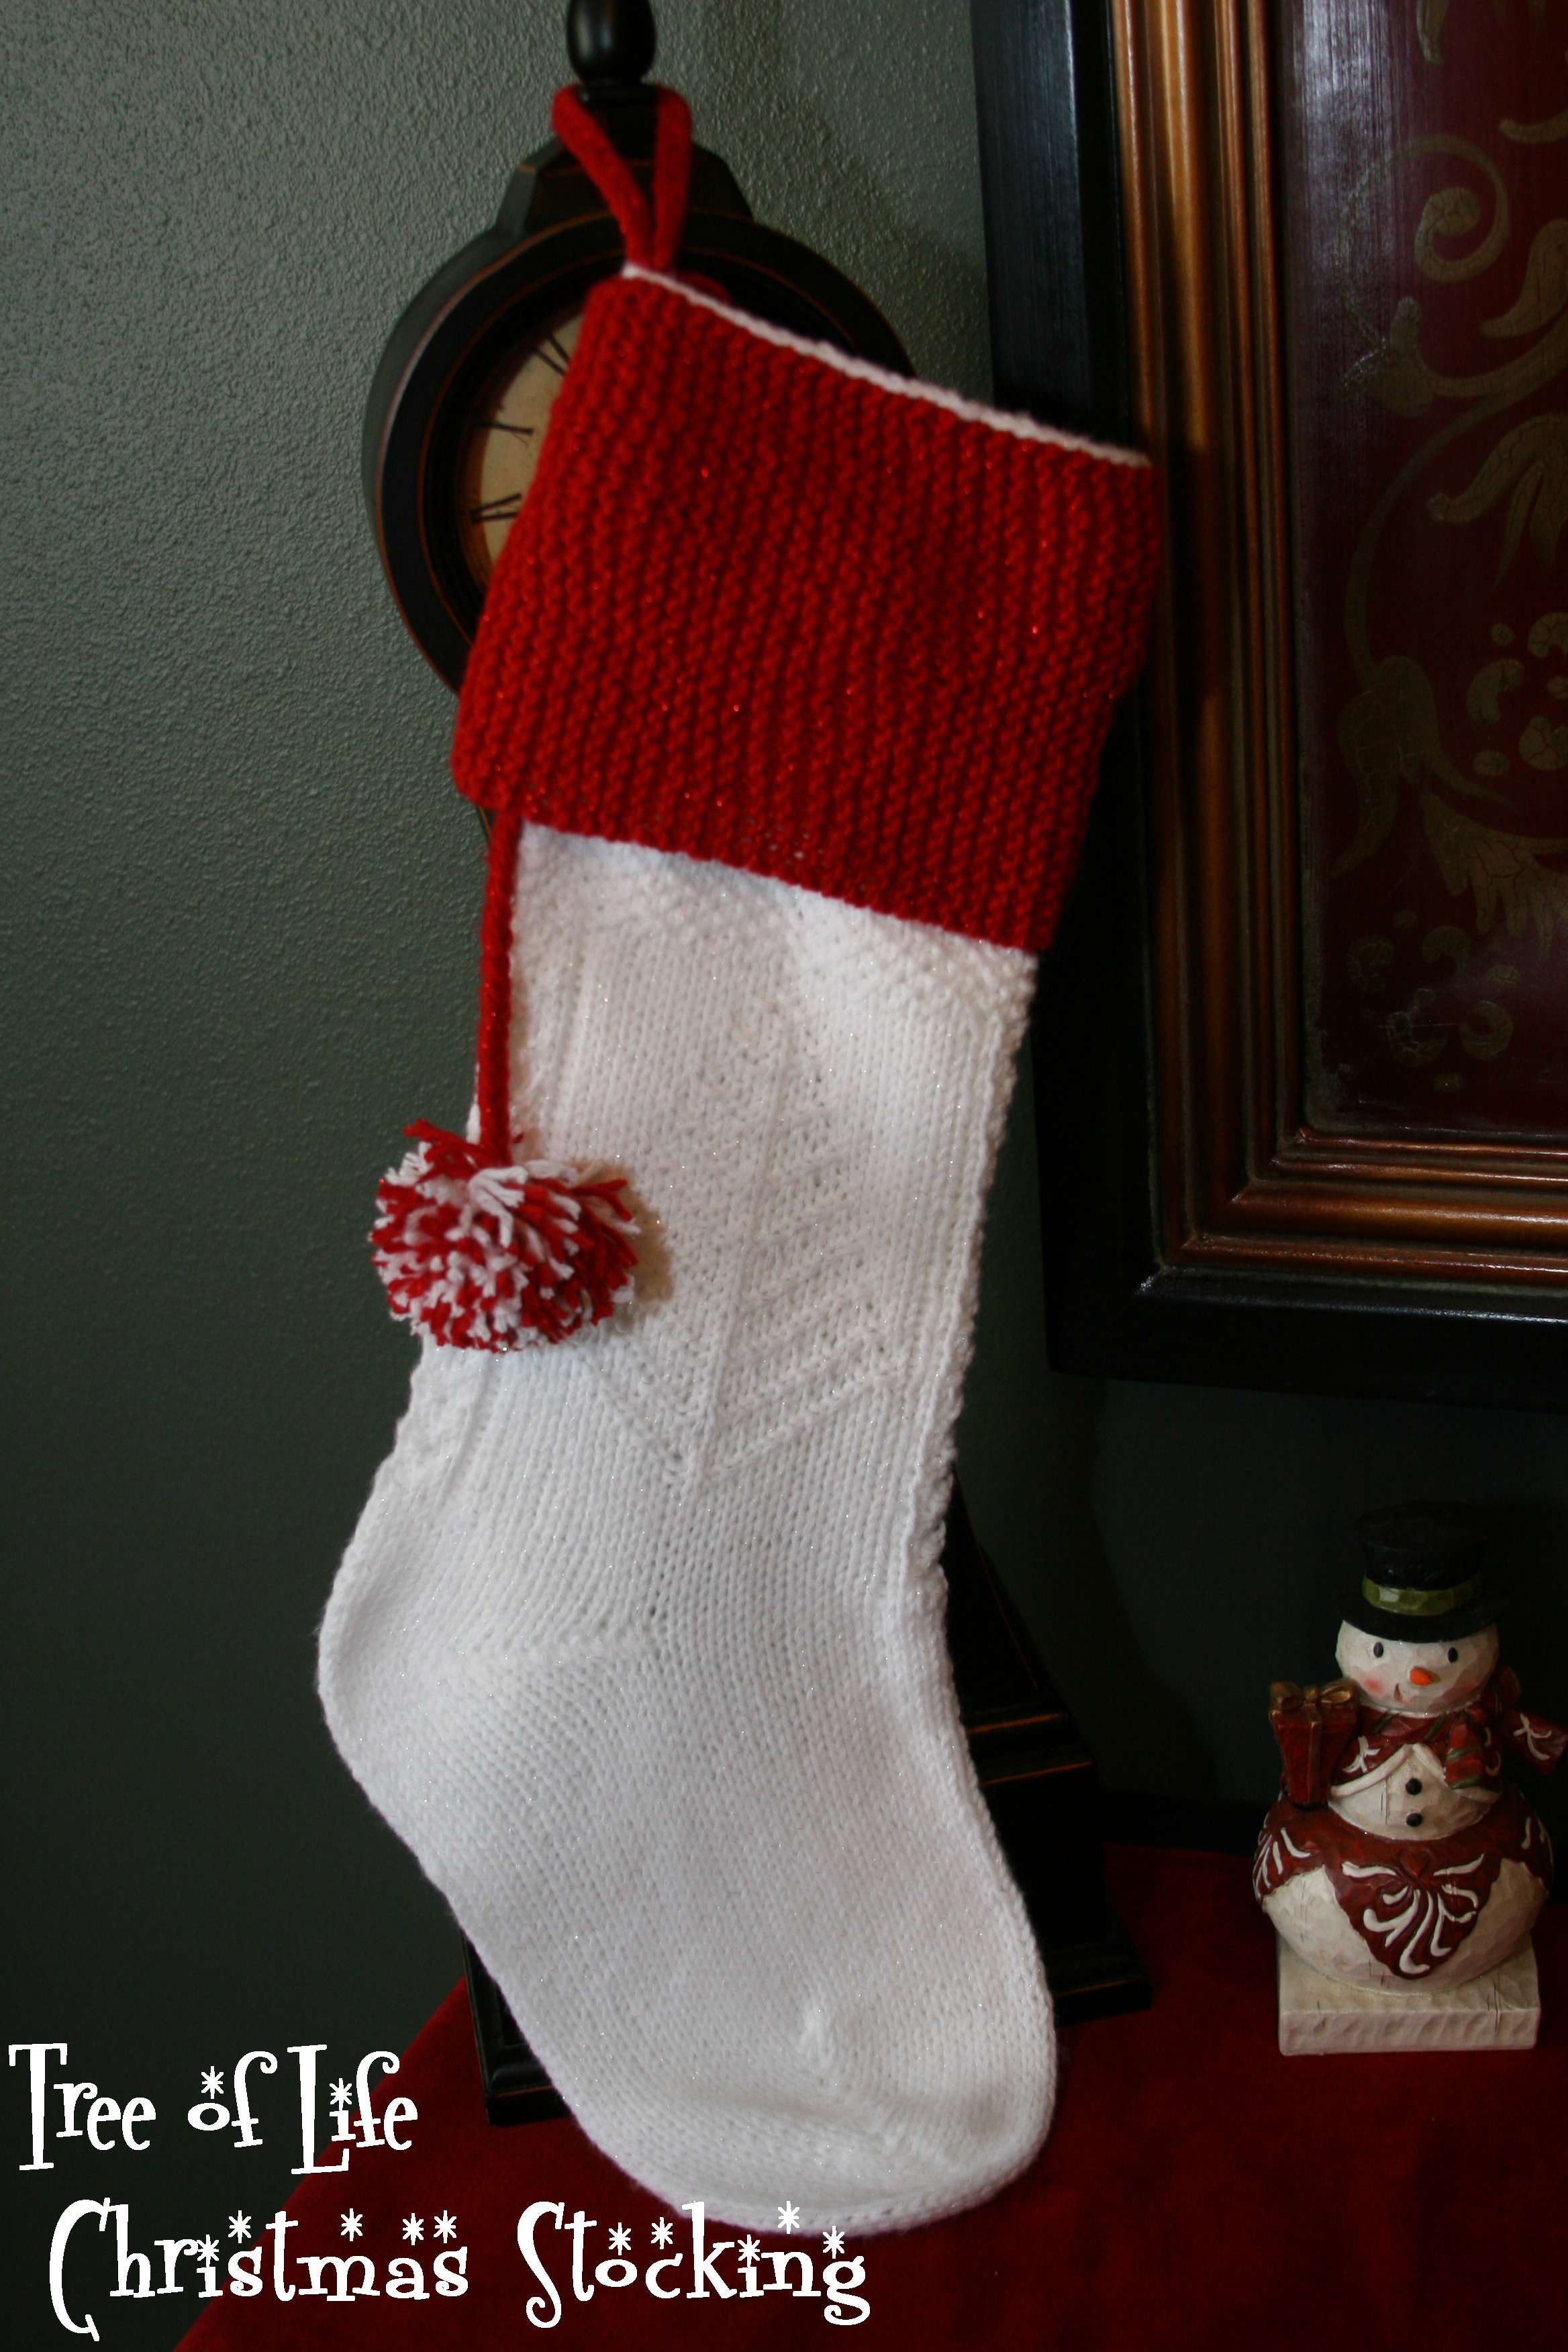 Knitting Christmas Stocking Pattern : Happy Holidays!!! Christmas Stocking Pattern   Knitting Board Blog